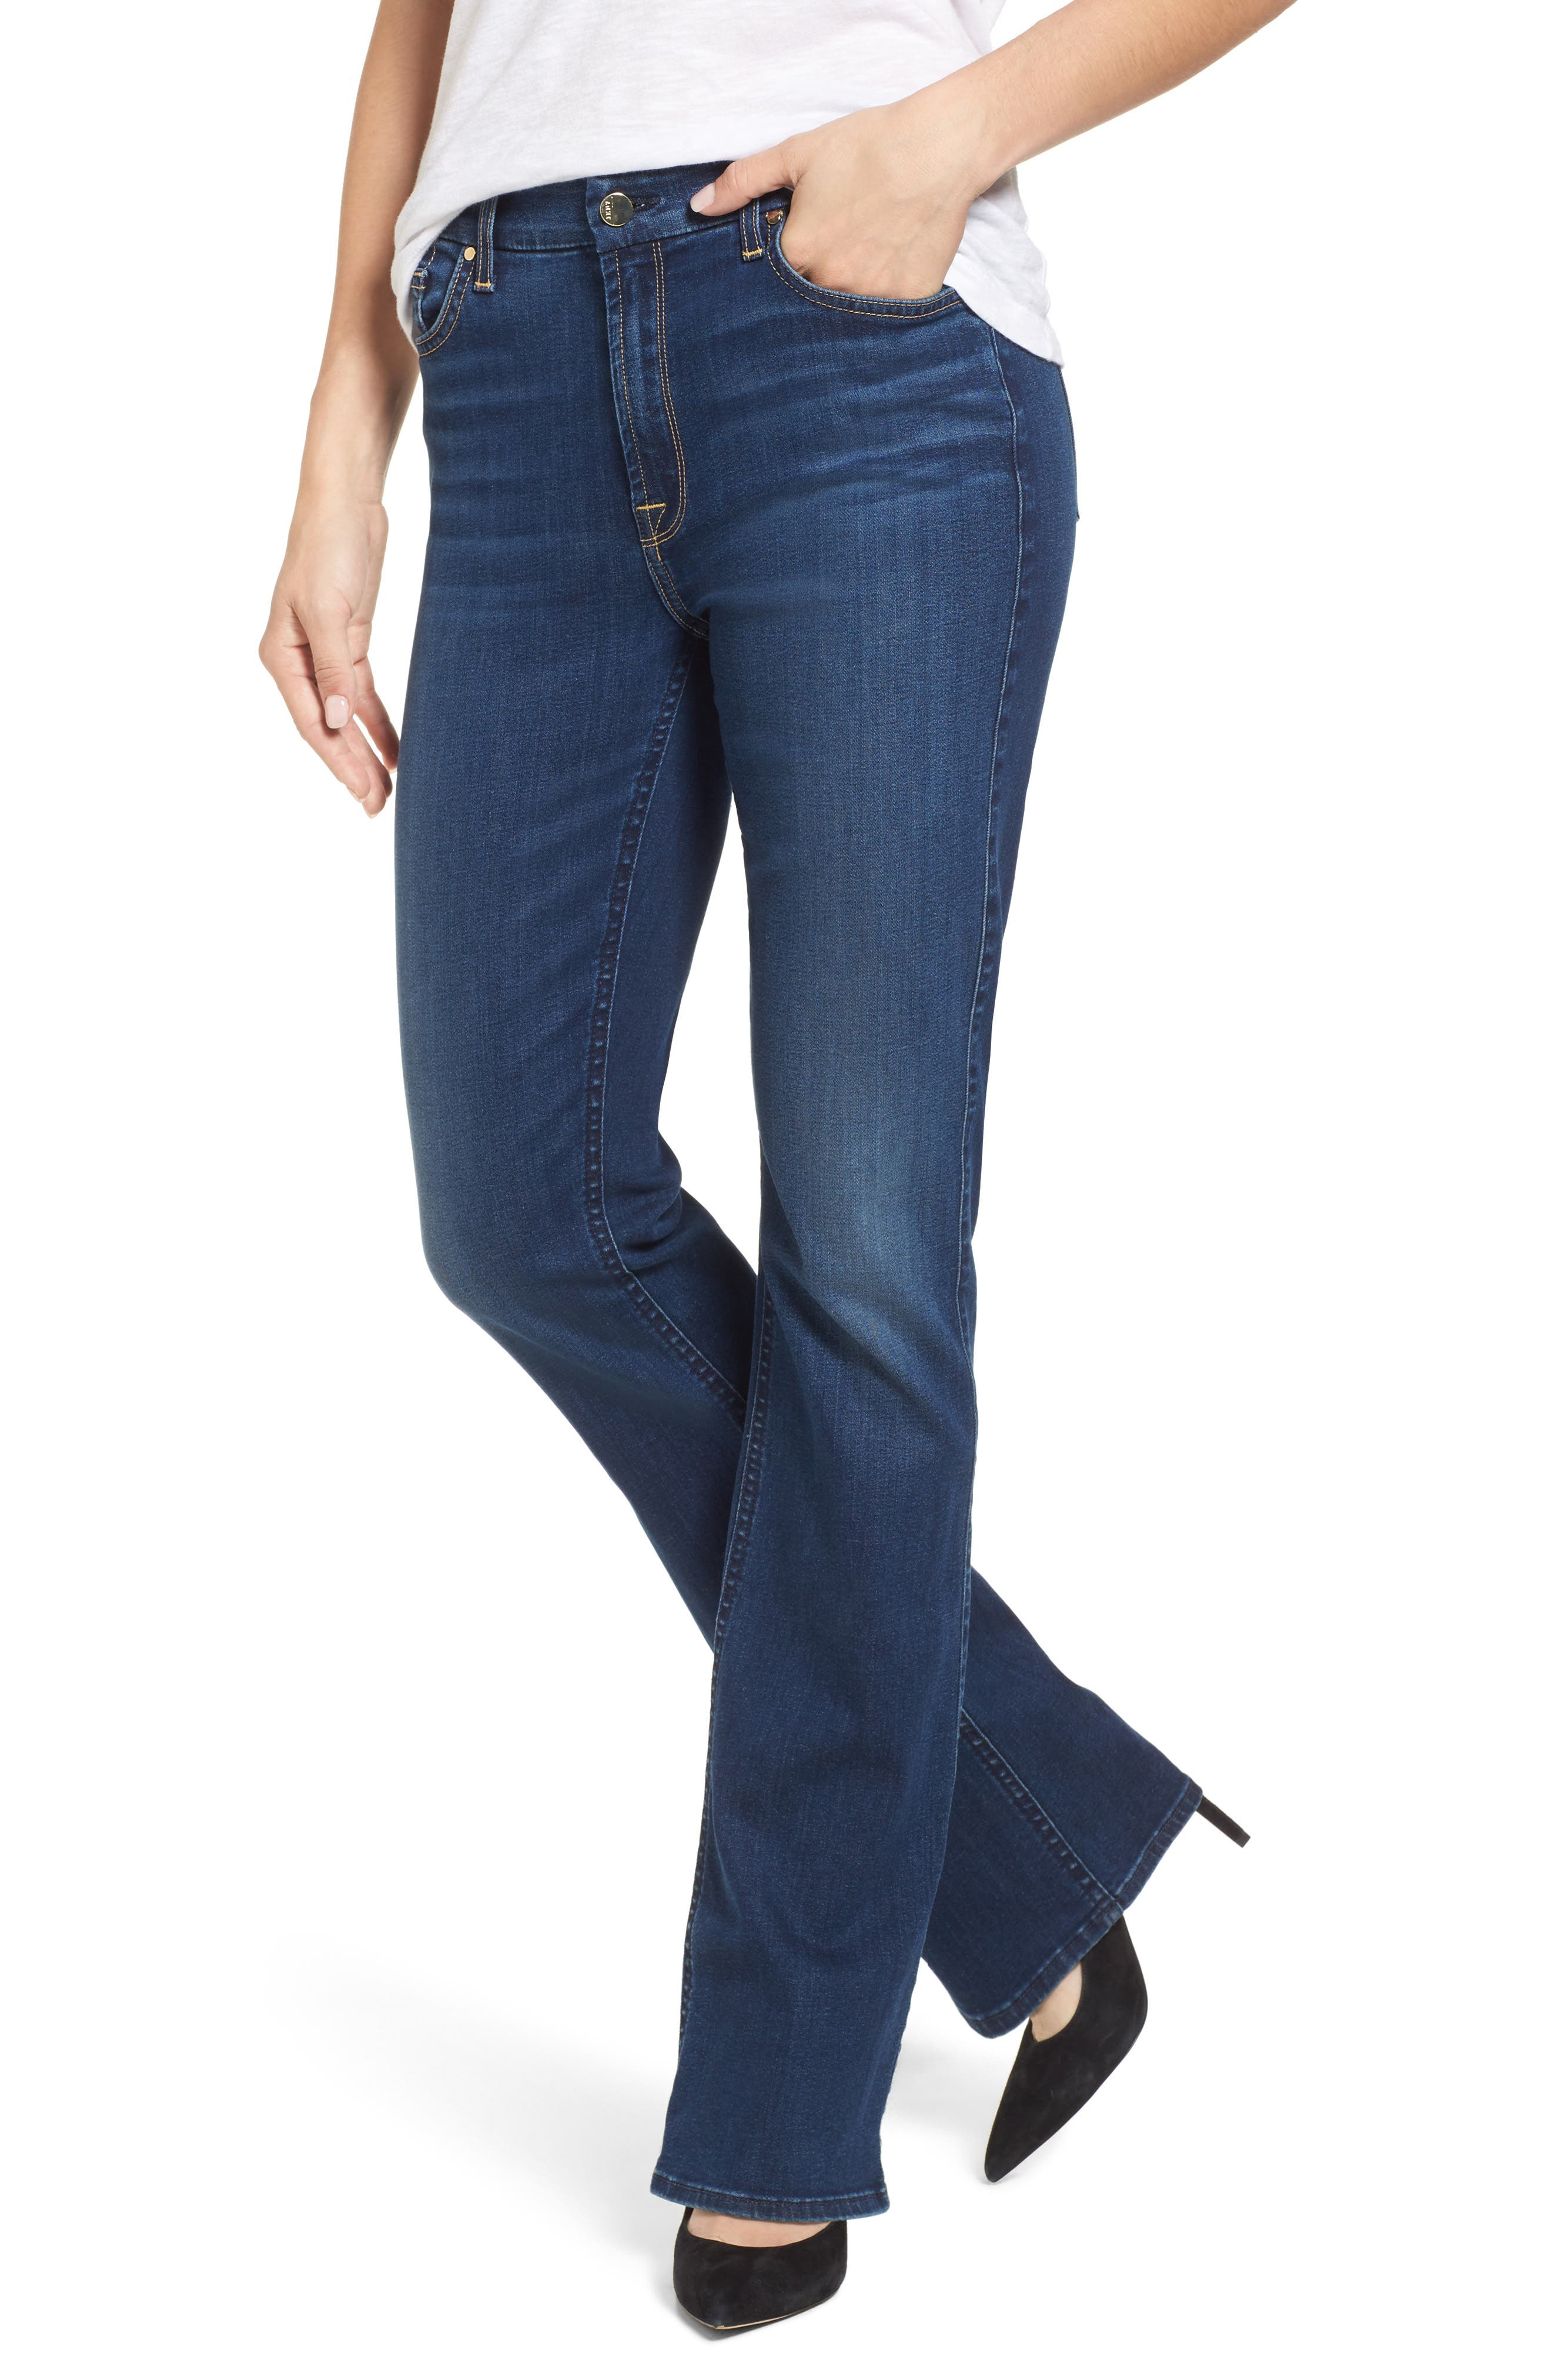 JEN7 BY 7 FOR ALL MANKIND, Slim Bootcut Jeans, Main thumbnail 1, color, RICHE TOUCH MEDIUM BLUE